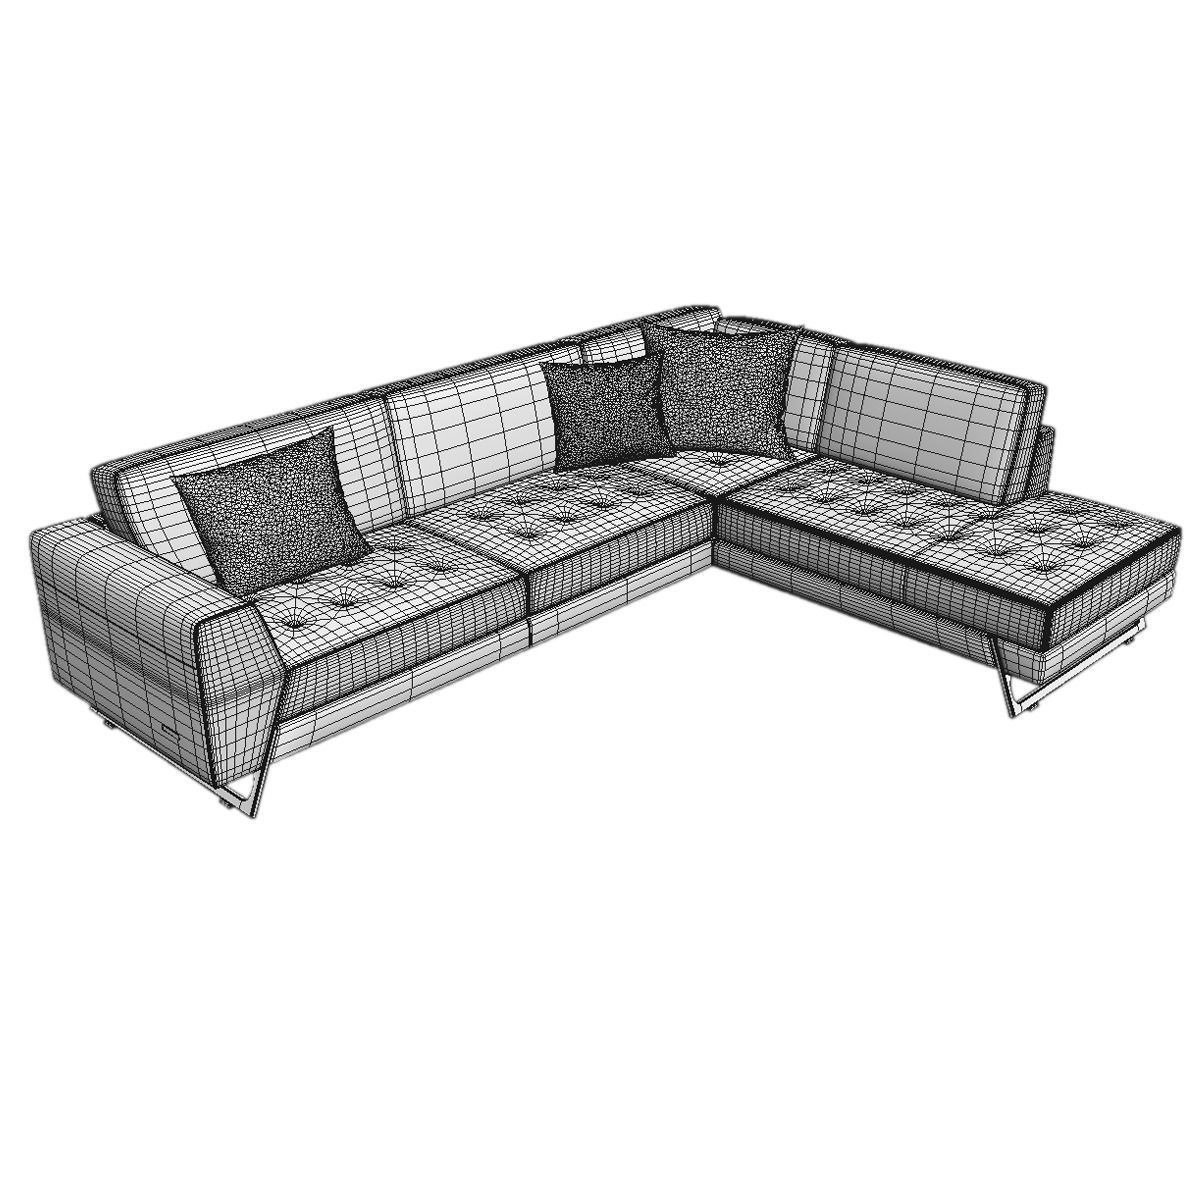 Kanapee Sofa Couch Roche Bobois Satelis Canape Sofa And Armchair Free 3d